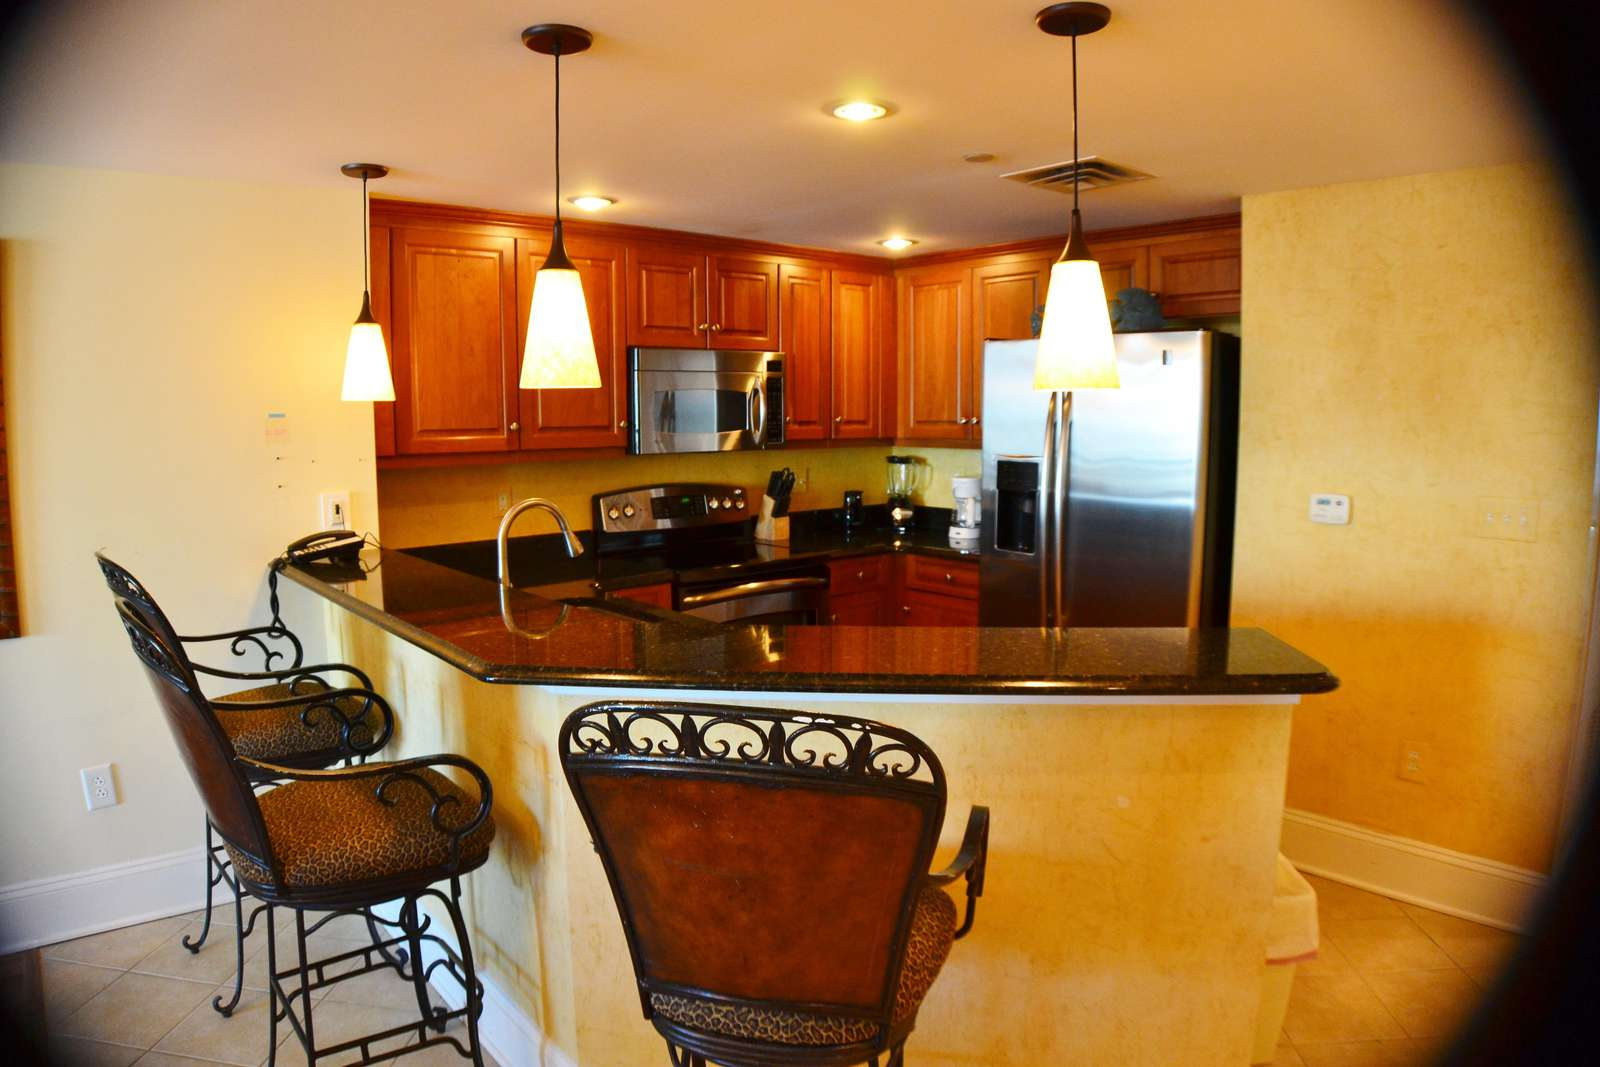 Breakfast bar with additional seating area